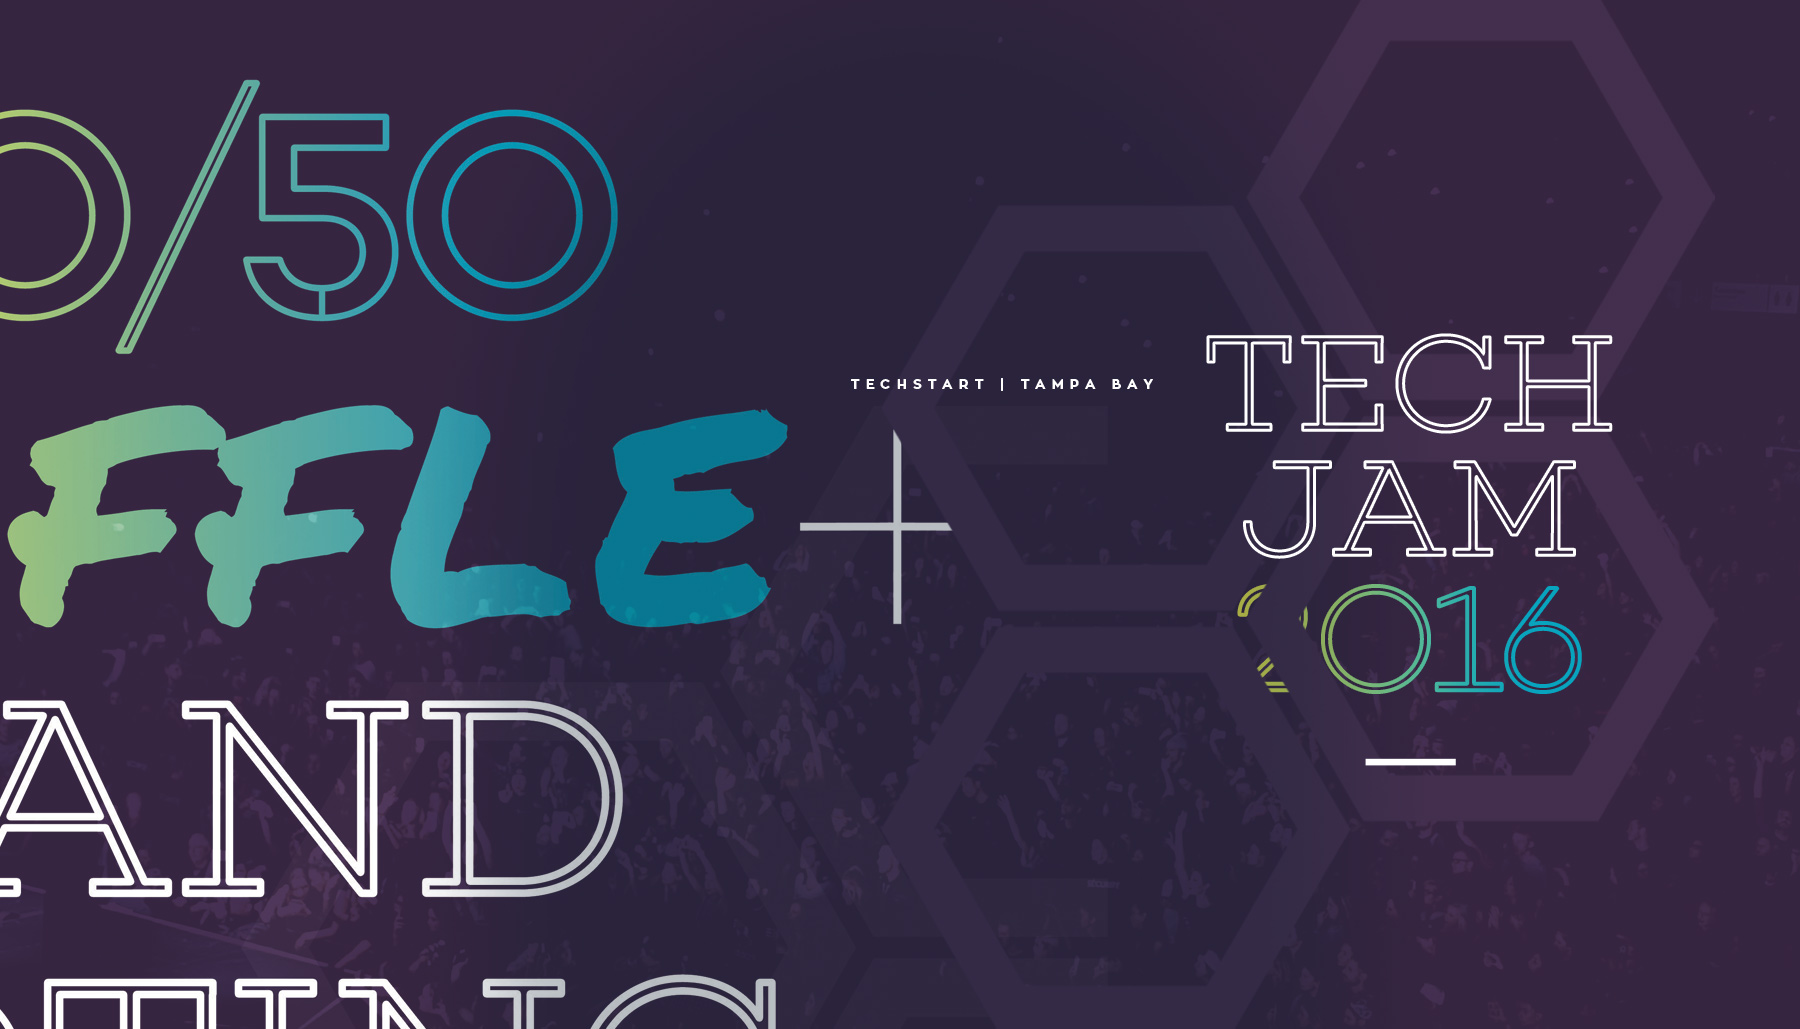 Elevate Branding - TechStart Tampa Tech Jam 2016 event identity and branding